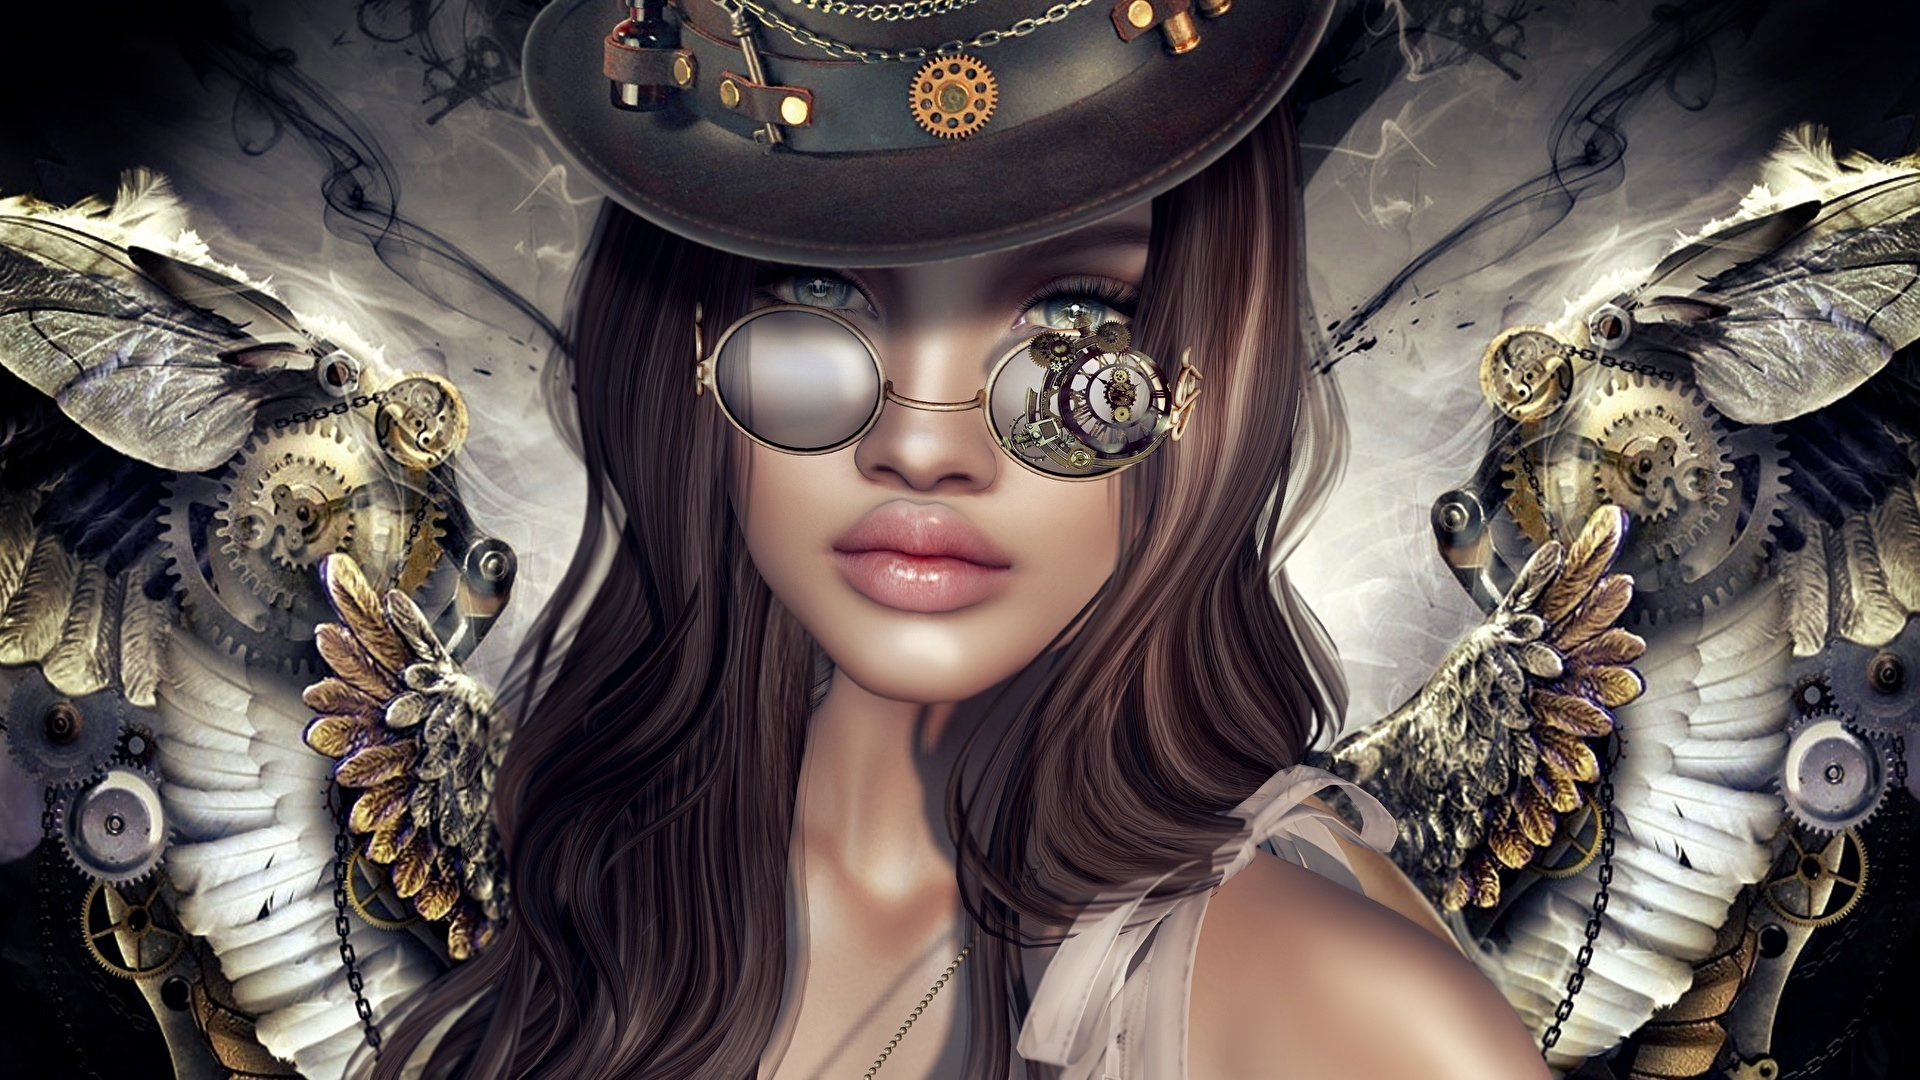 Photos Steampunk Girls Fantasy 3d Graphics Angel 1920x1080